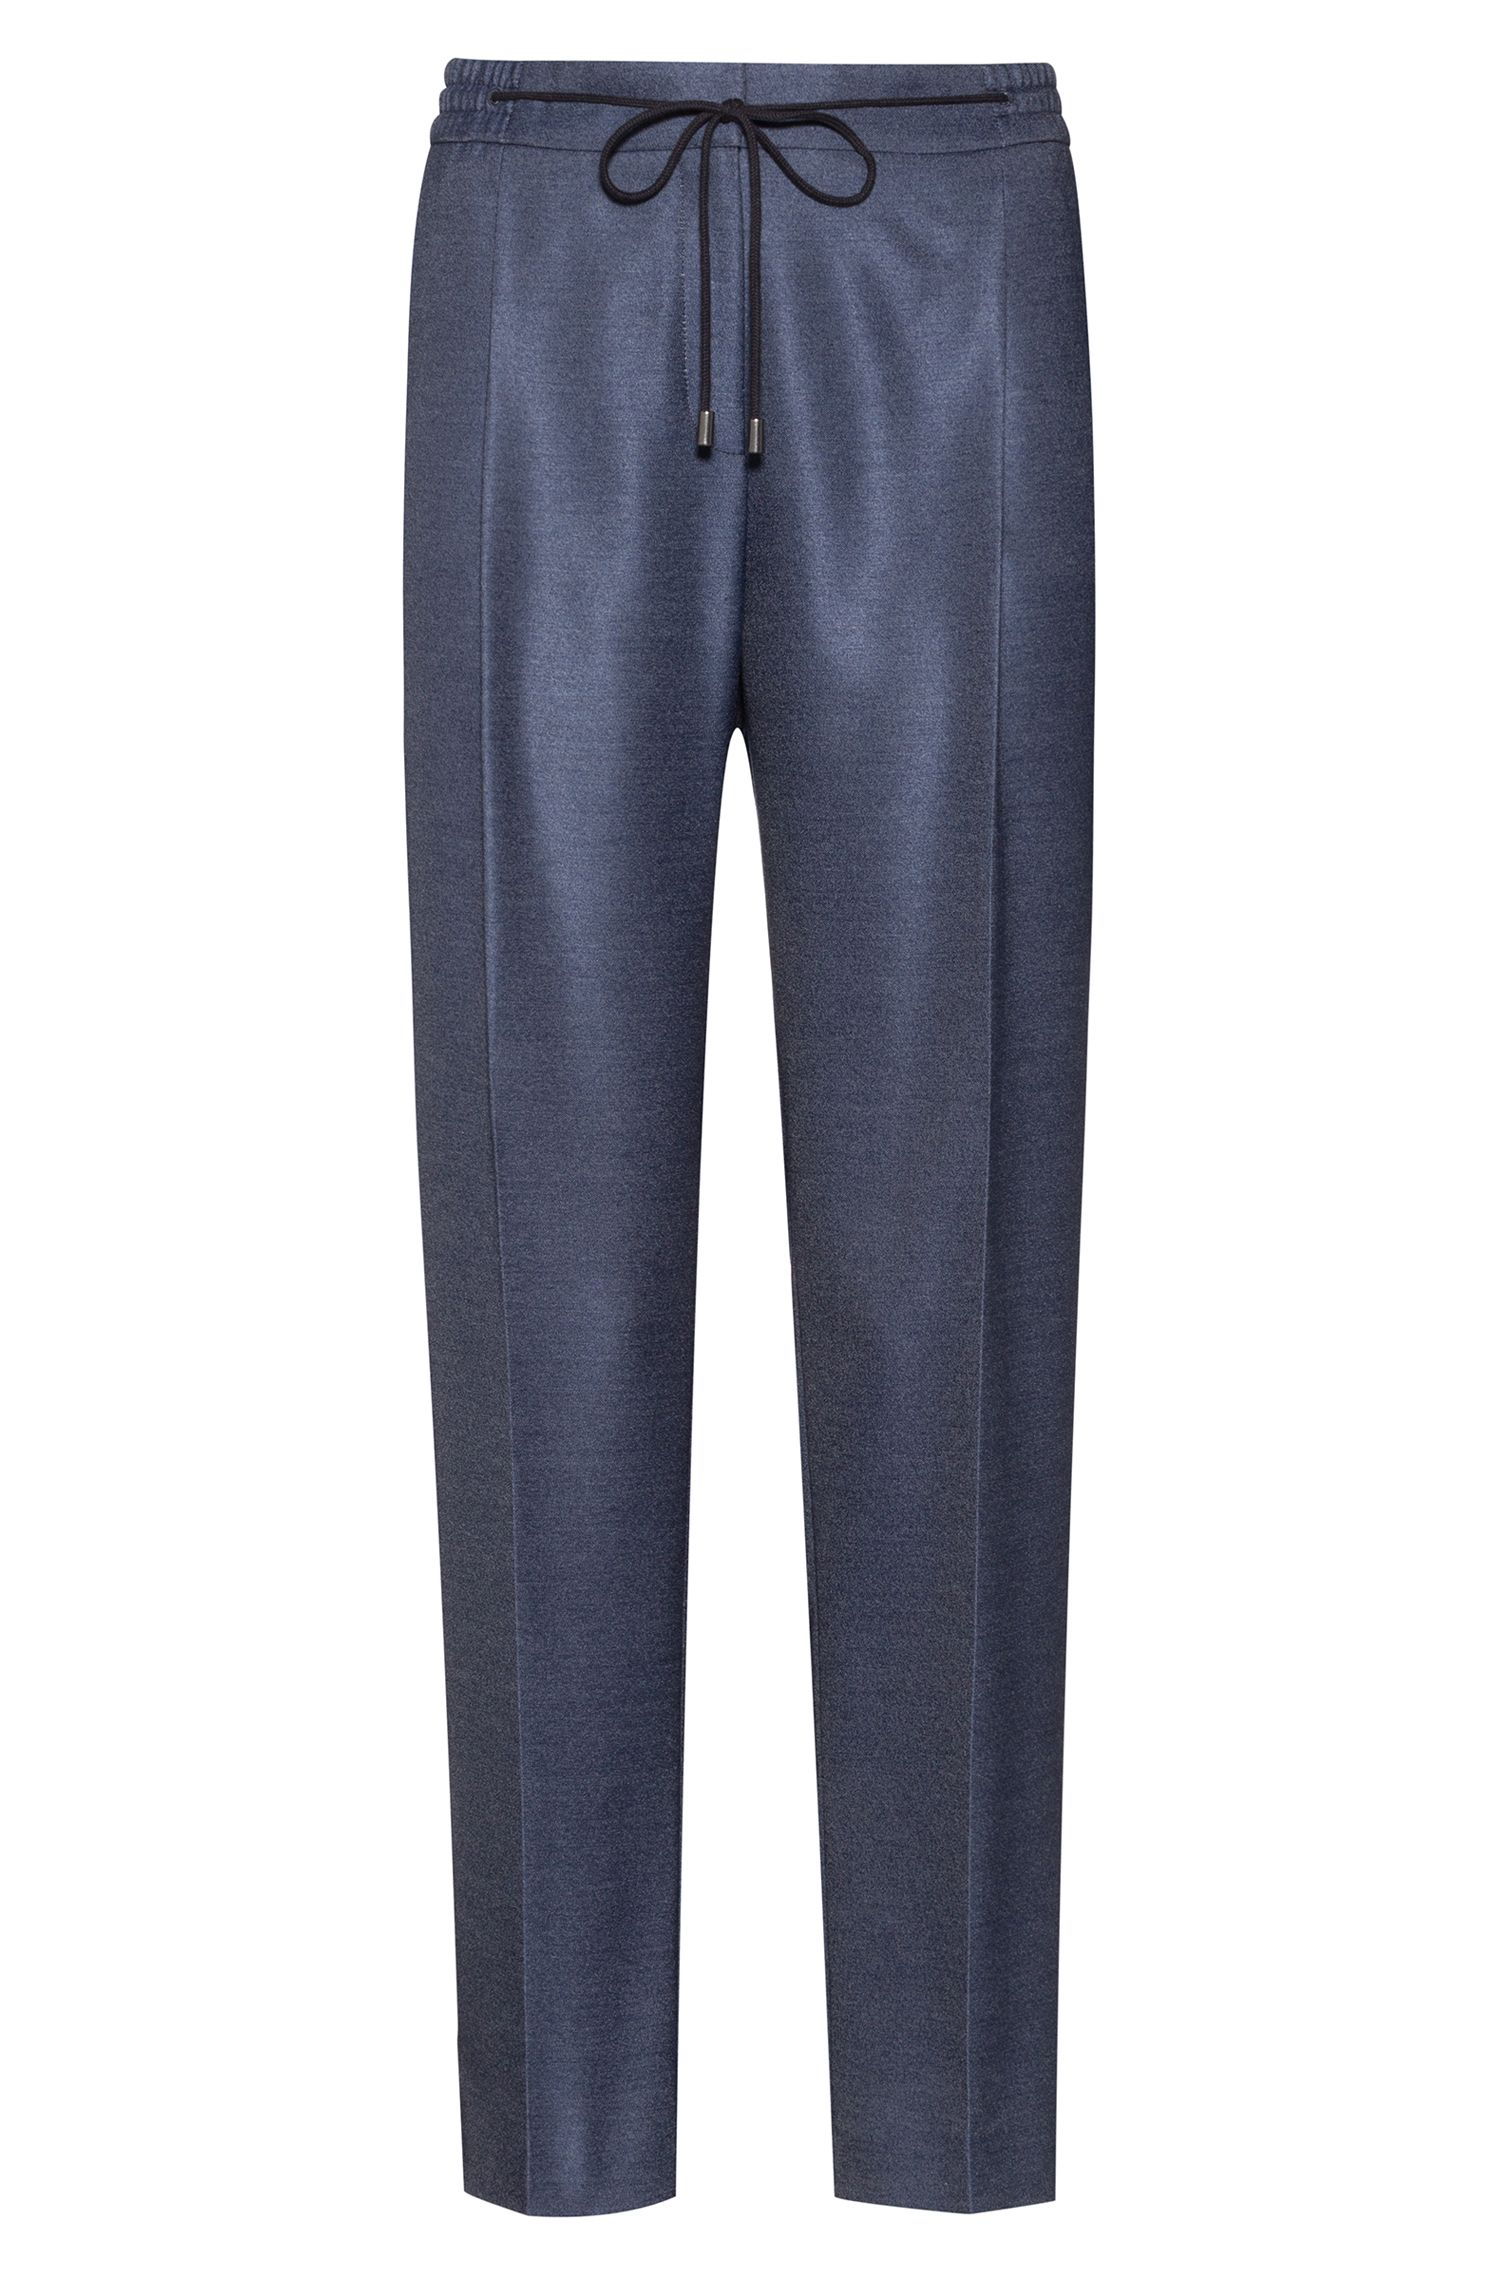 Hugo Boss - Relaxed-fit trousers in stretch fabric with drawstring waist - 1